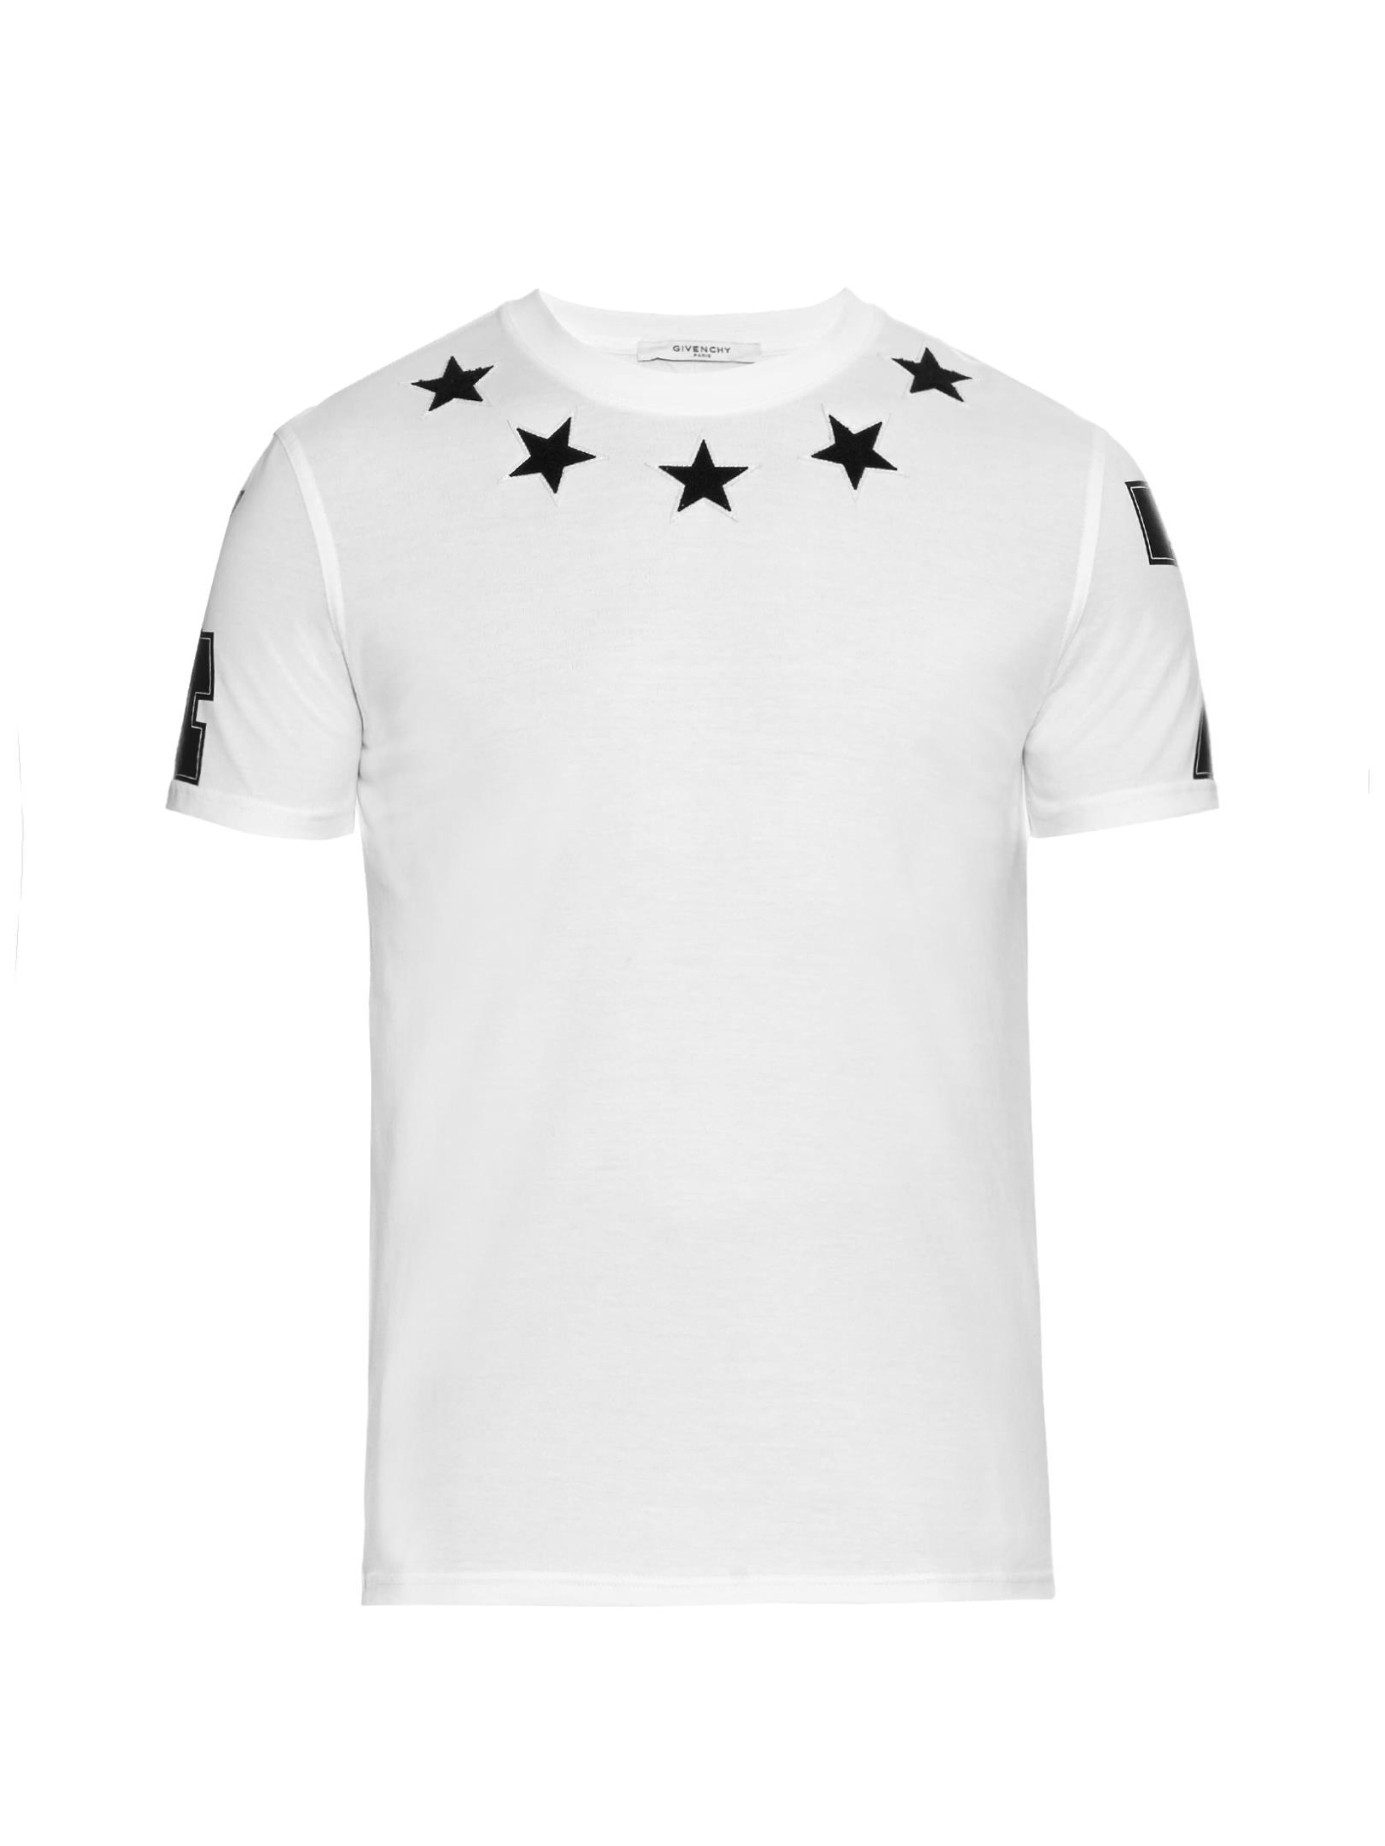 b6392270d55d39 Givenchy Cuban-fit Fleece-stars T-shirt in White for Men - Lyst